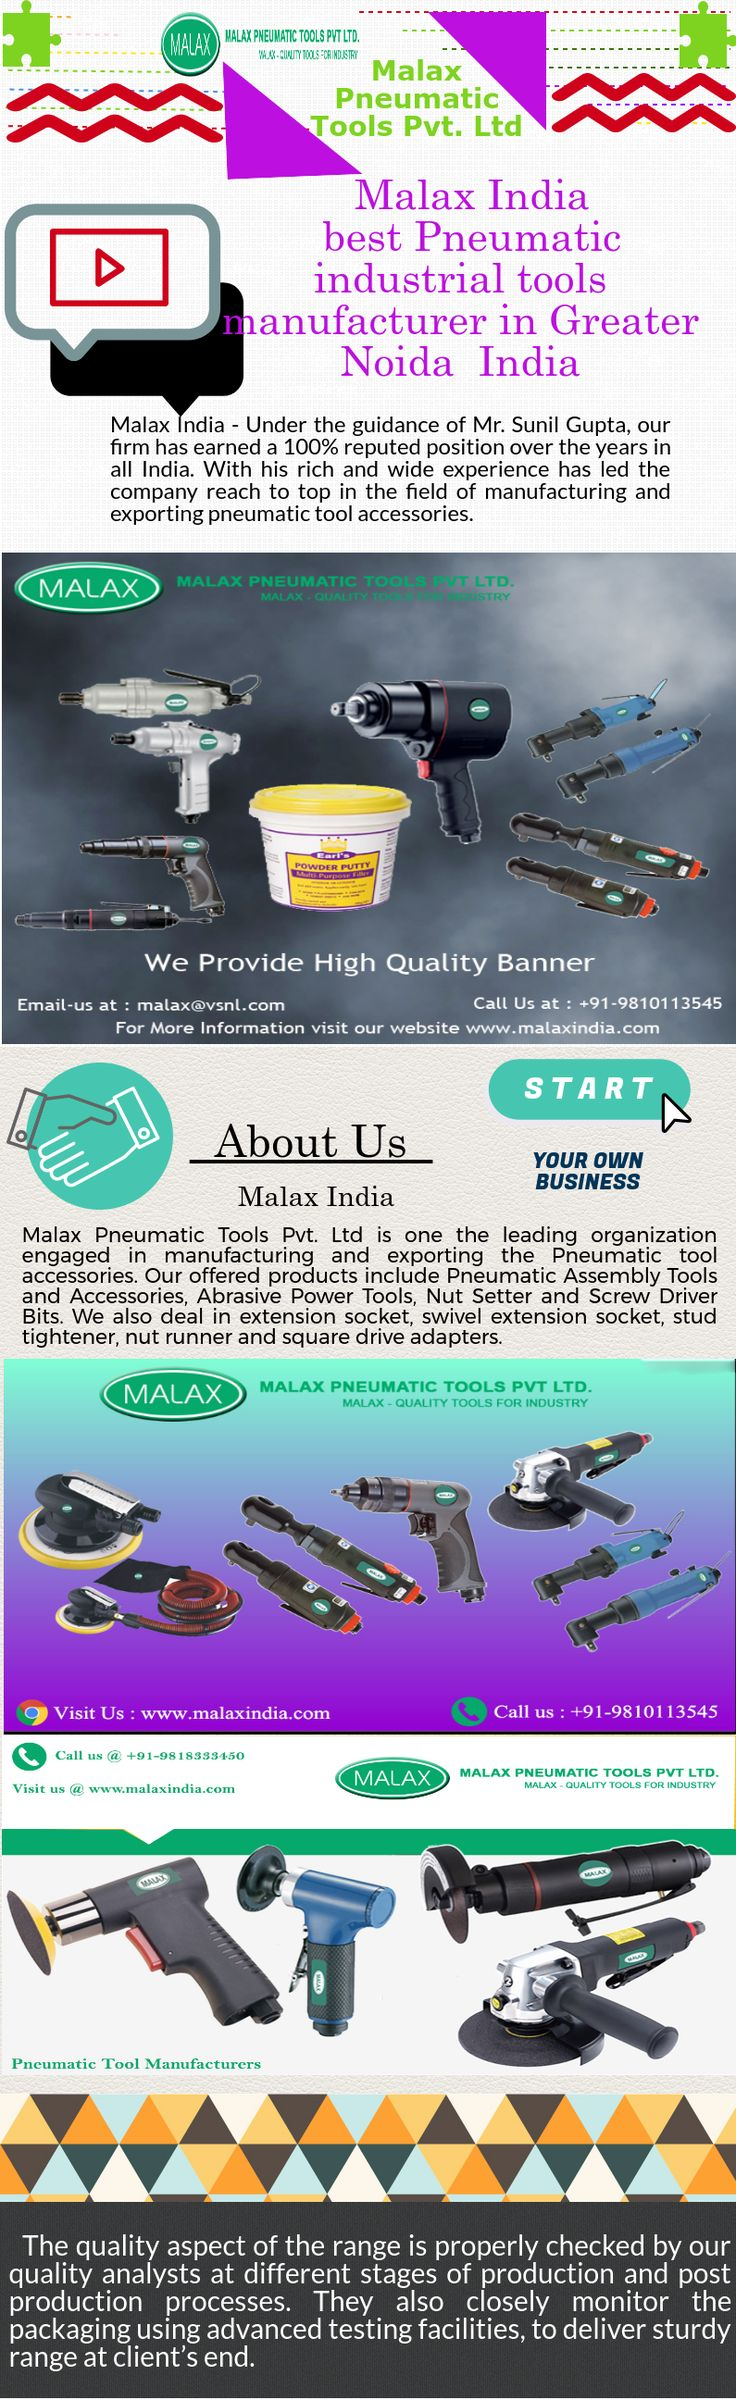 Malax Pneumatic Tools Pvt. Ltd is one the leading organization engaged in manufacturing and exporting the Pneumatic Assembly Tools and Accessories, Nut Setter and Screw Driver Bits, Abrasive Power Tools in India.  http://www.malaxindia.com/